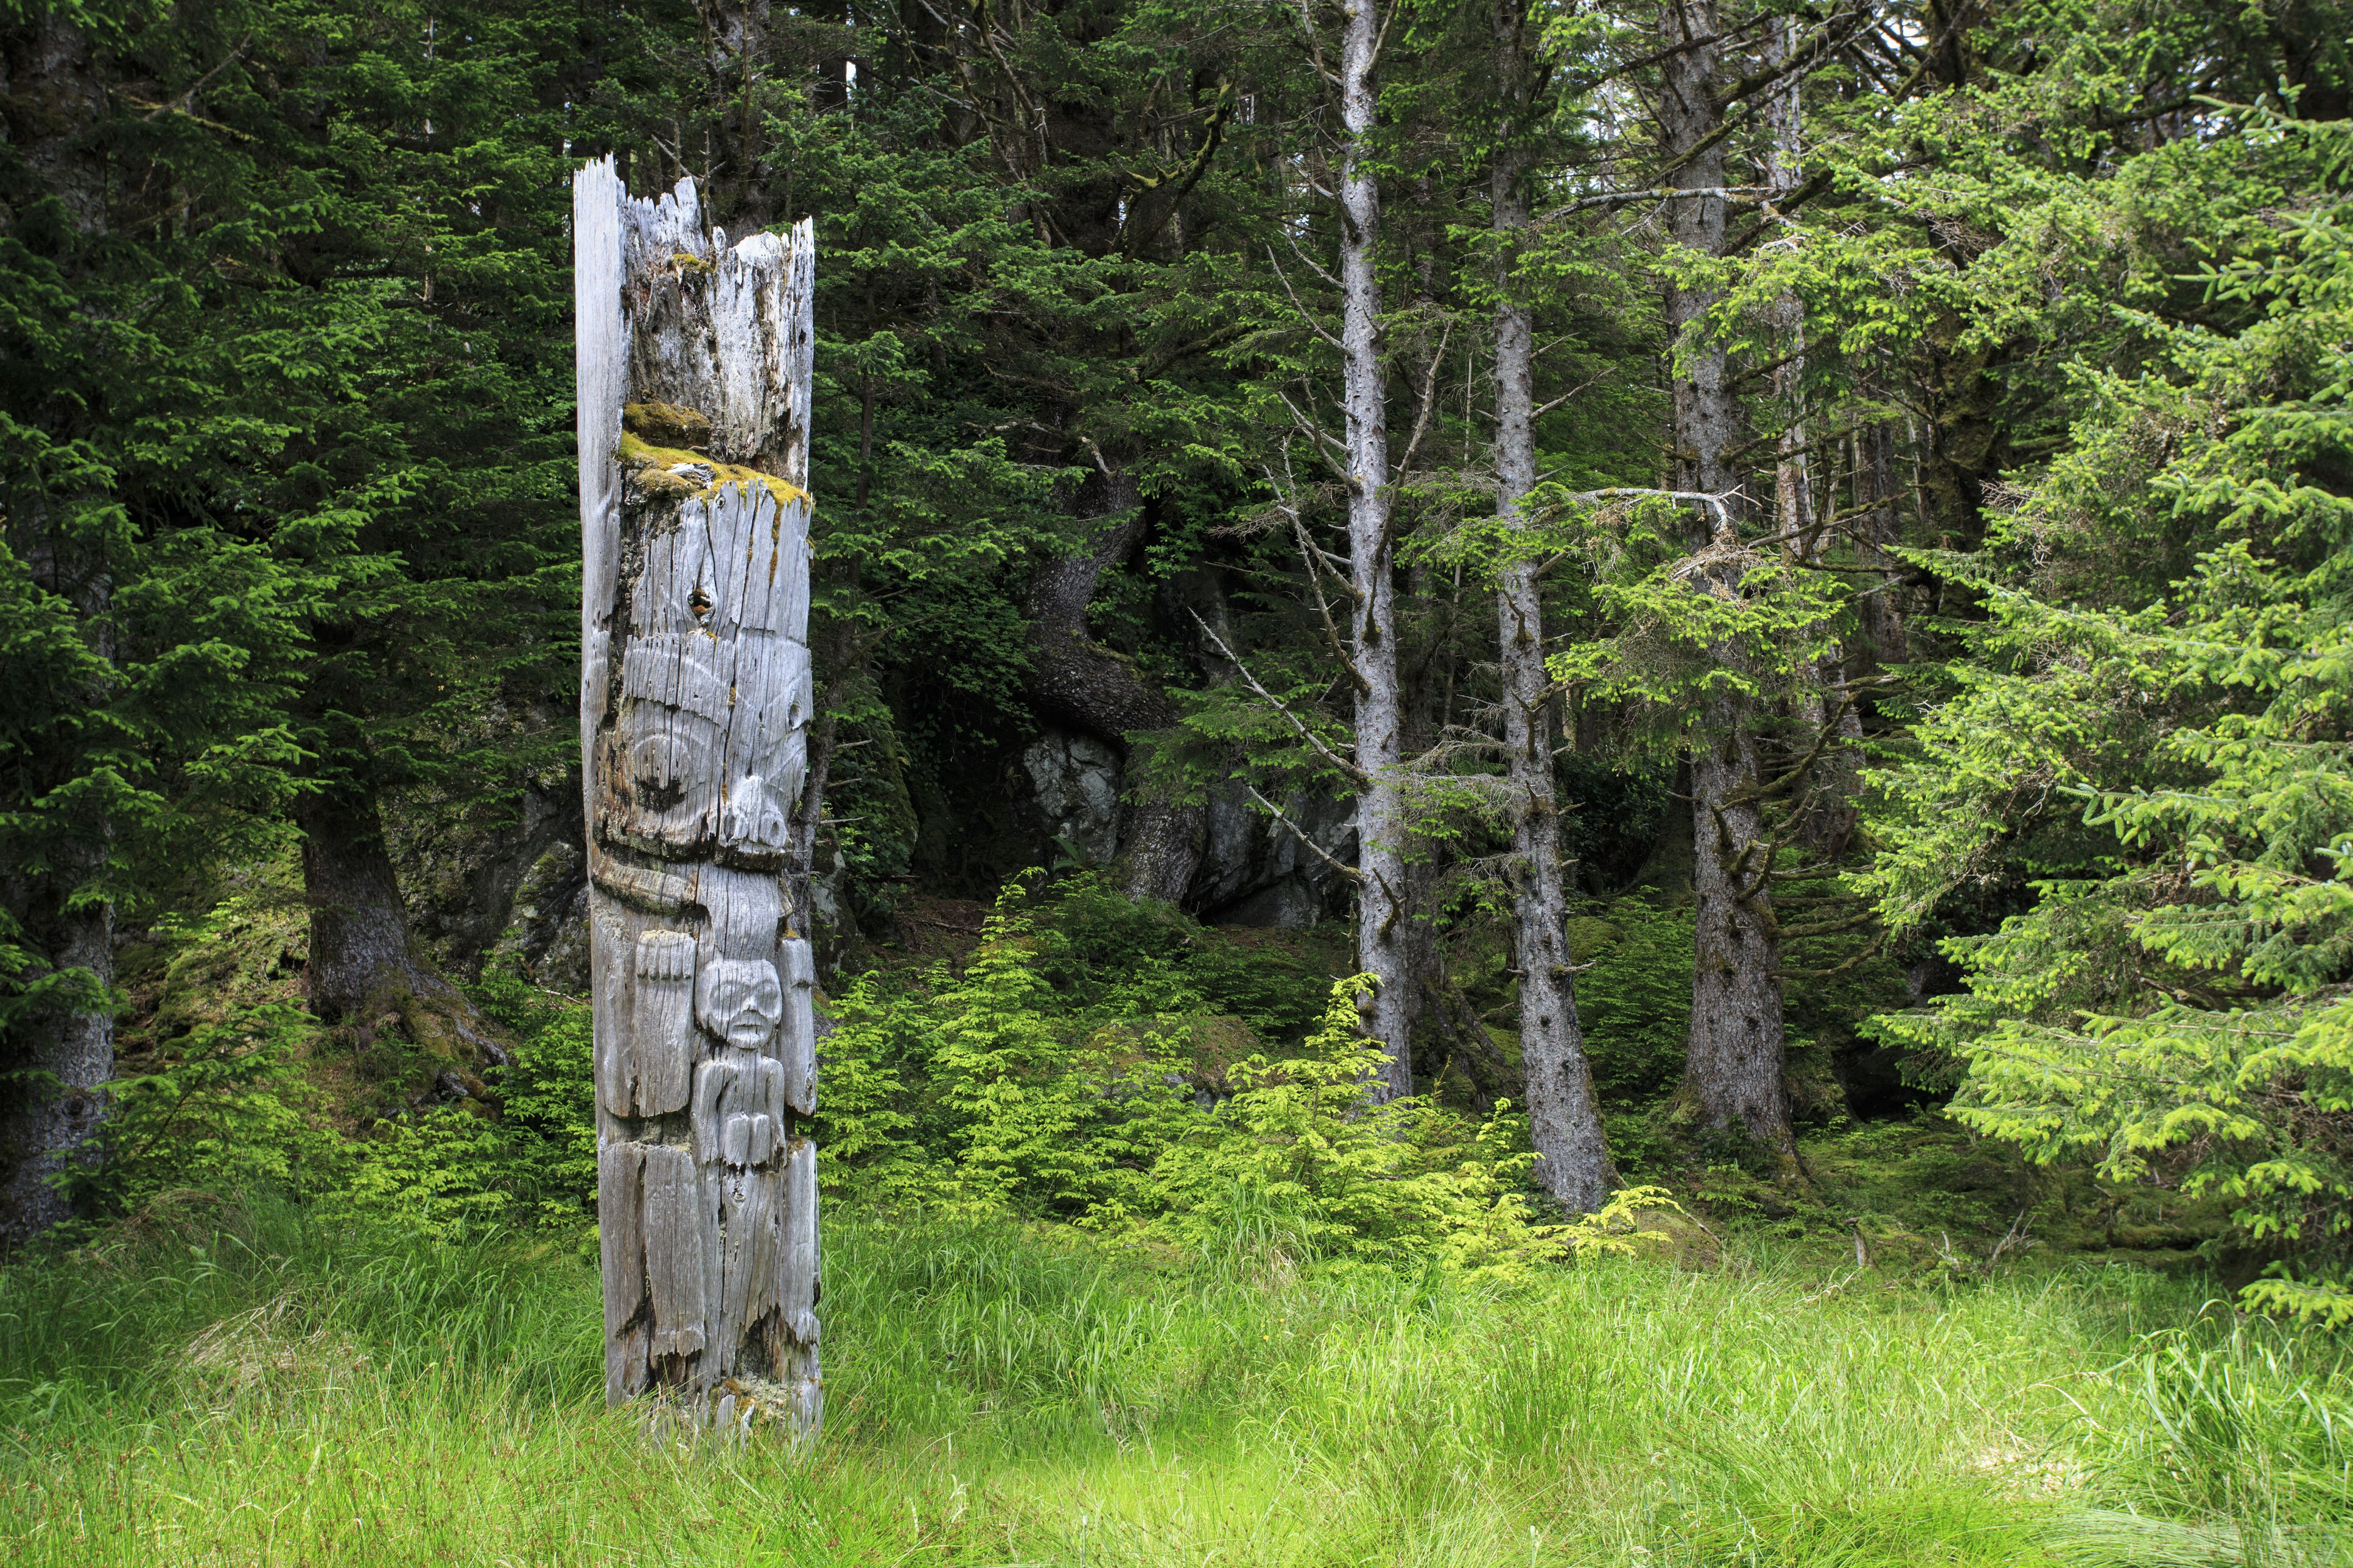 Standing mortuary pole at Ninstints on Sgang Gwaay, a UNESCO World Heritage Site celebrating the most preserved remaining display of ancient Haida culture, Gwaii Haanas National Park, Queen Charlotte Islands, BC, Canada